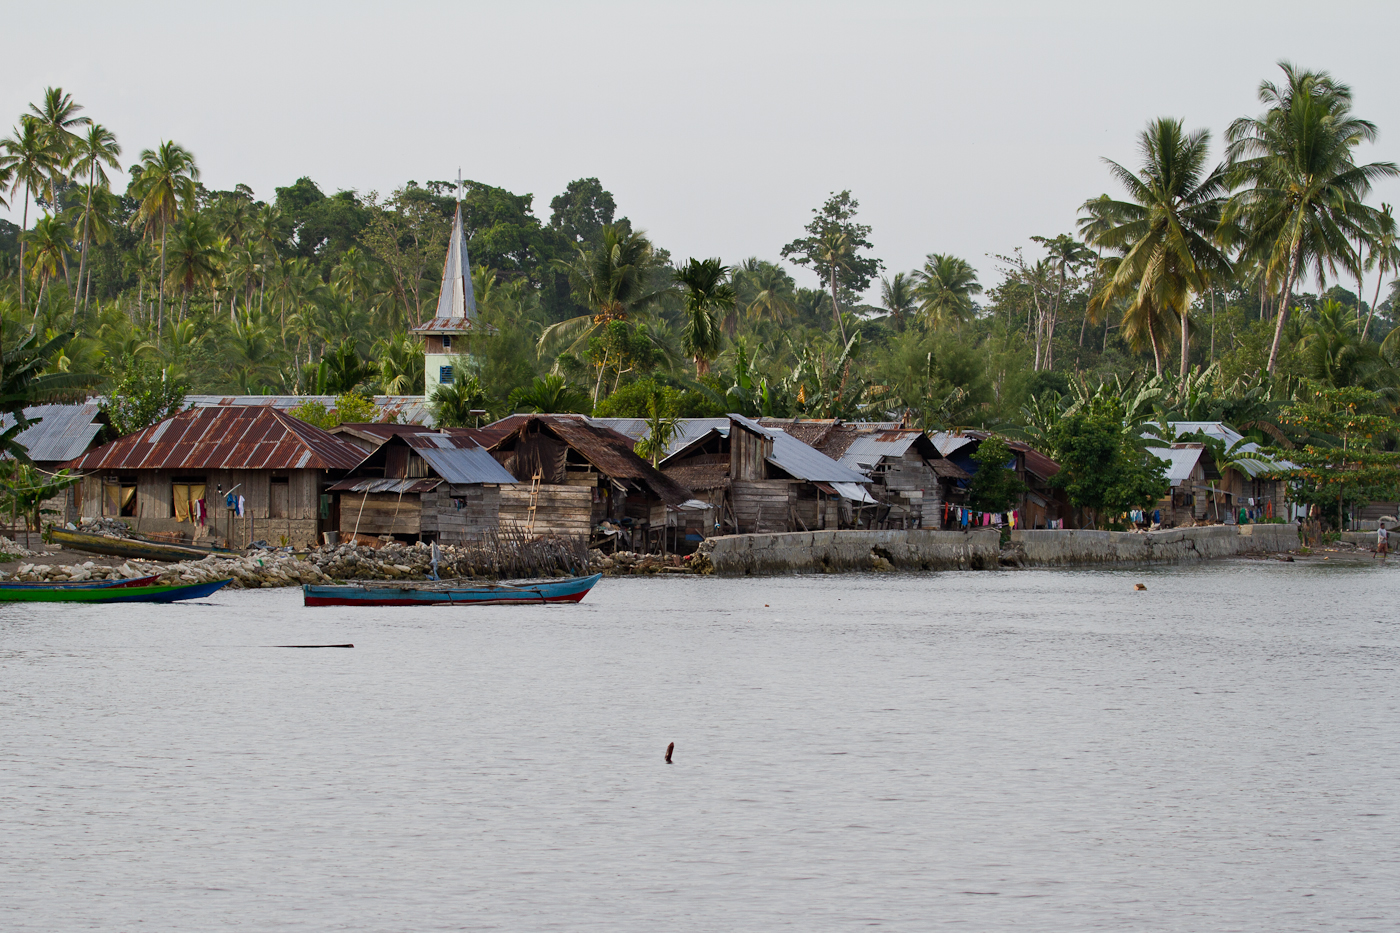 Fishing village in Halmahera near Weda Resort